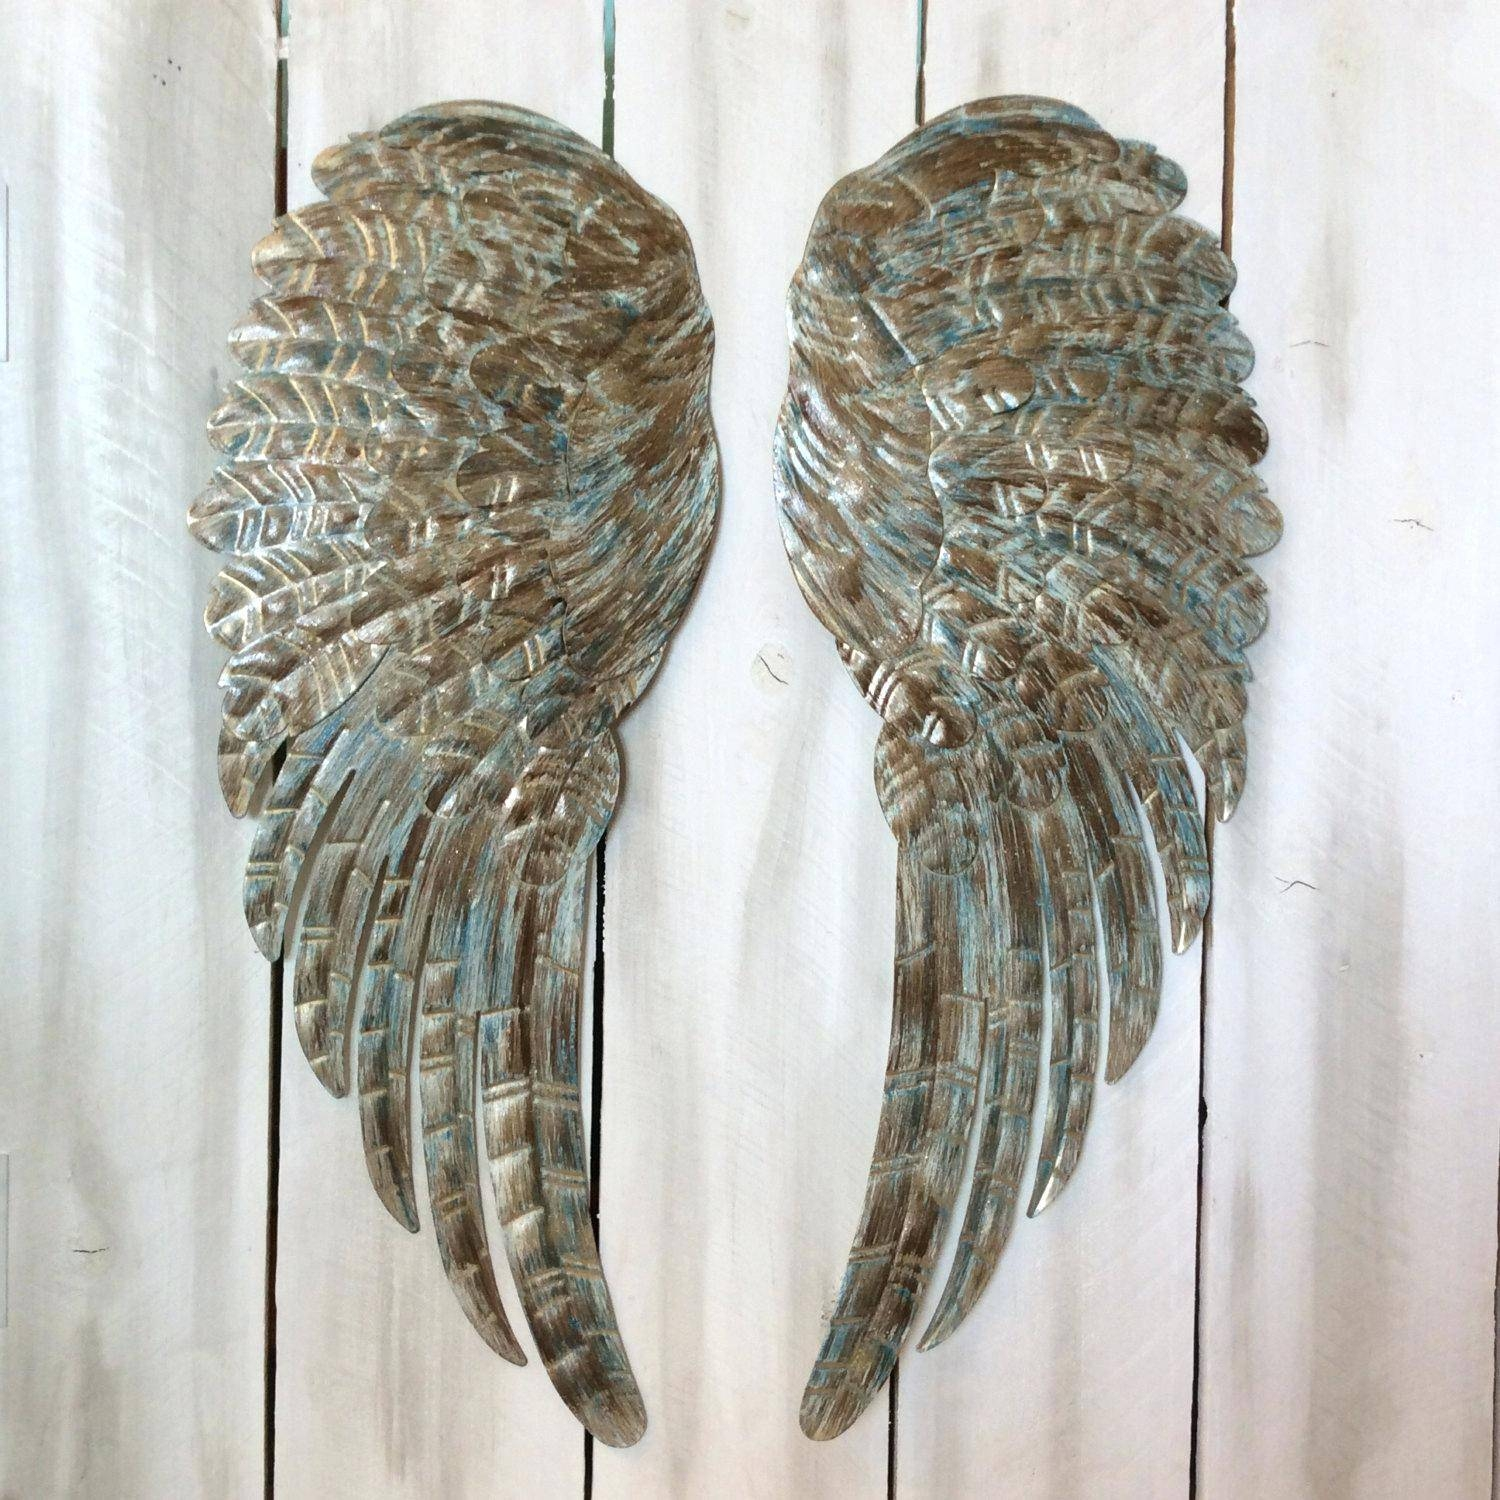 Articles With Angel Wings Wall Art Sculpture Plaque Label: Various With Regard To Best And Newest Angel Wings Sculpture Plaque Wall Art (View 3 of 20)